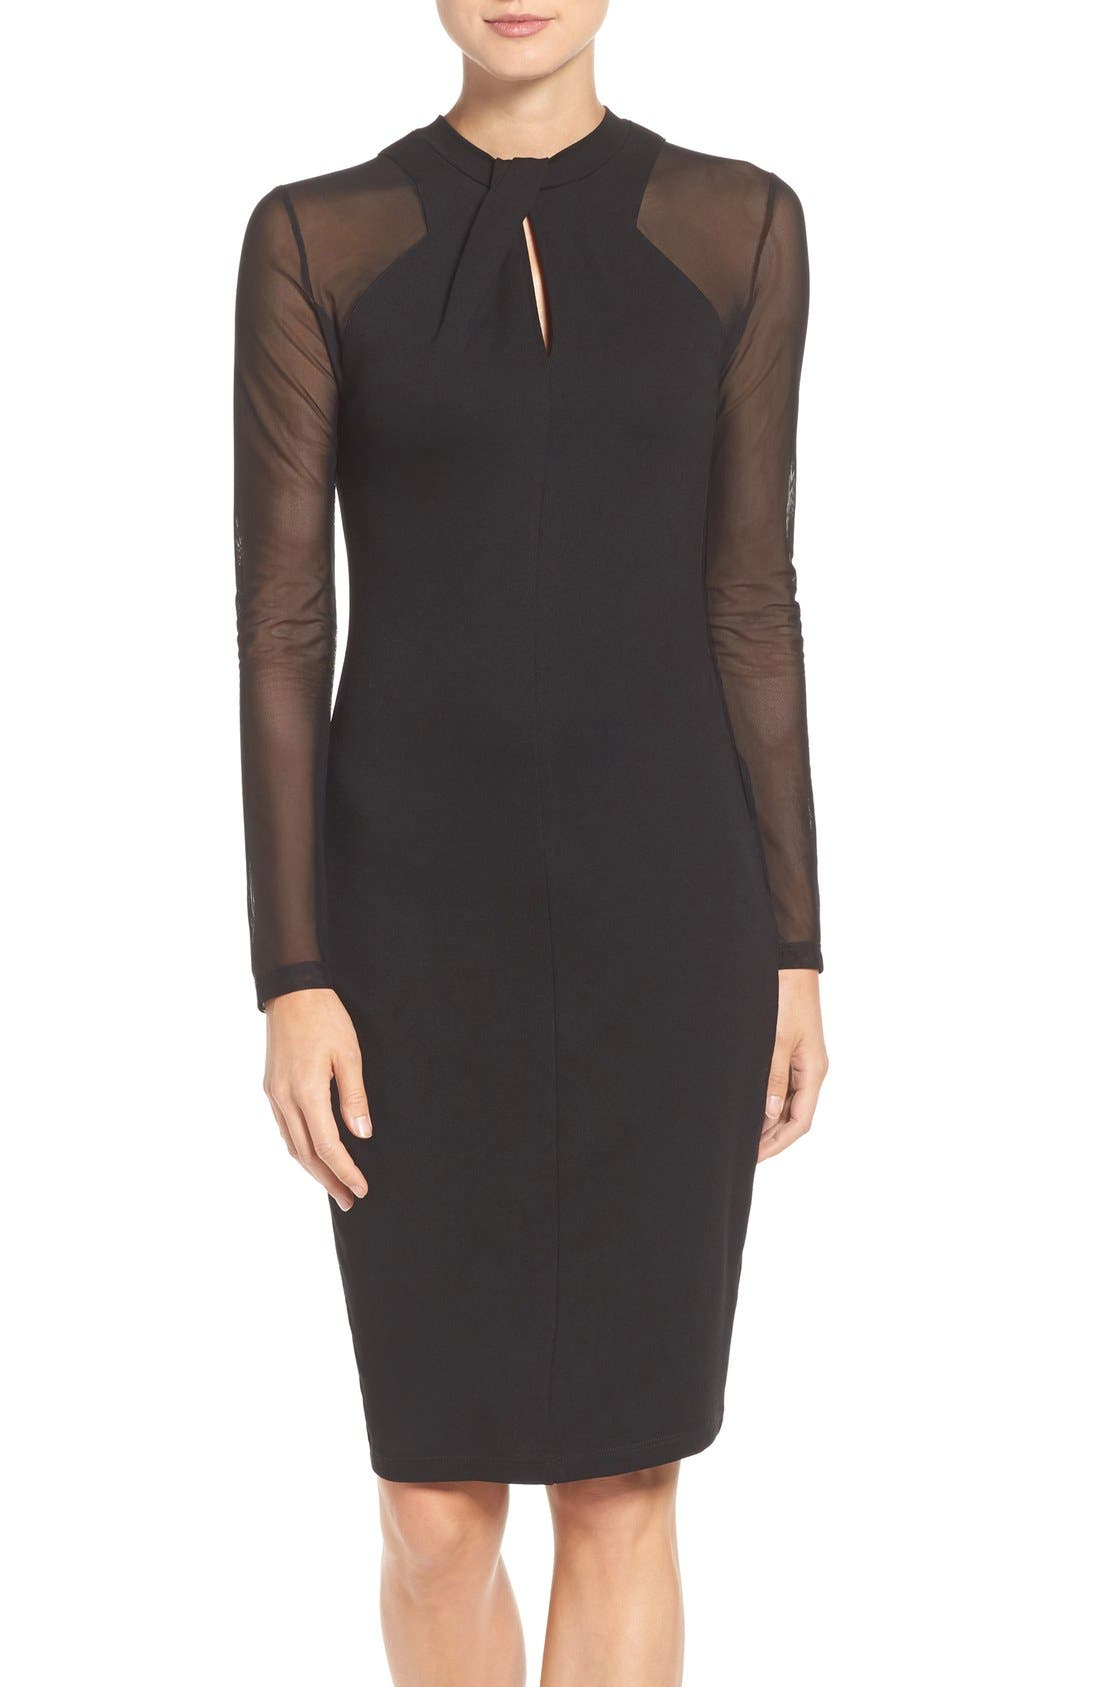 'Tania Tuck' Mesh Sleeve Sheath Dress,                             Main thumbnail 1, color,                             Black